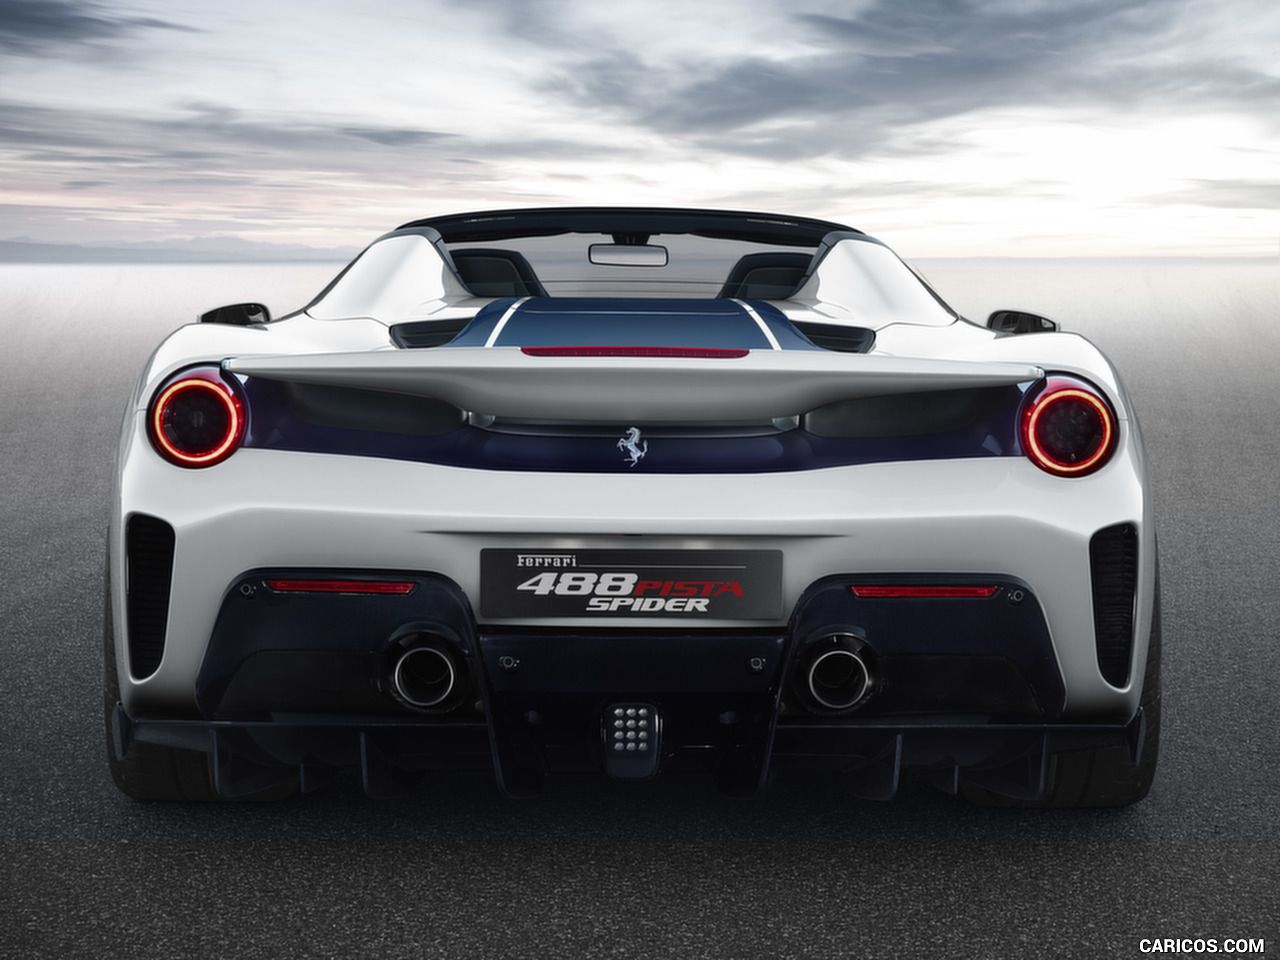 2019 Ferrari 488 Pista Spider Wallpaper Ferrari 488 Ferrari Car